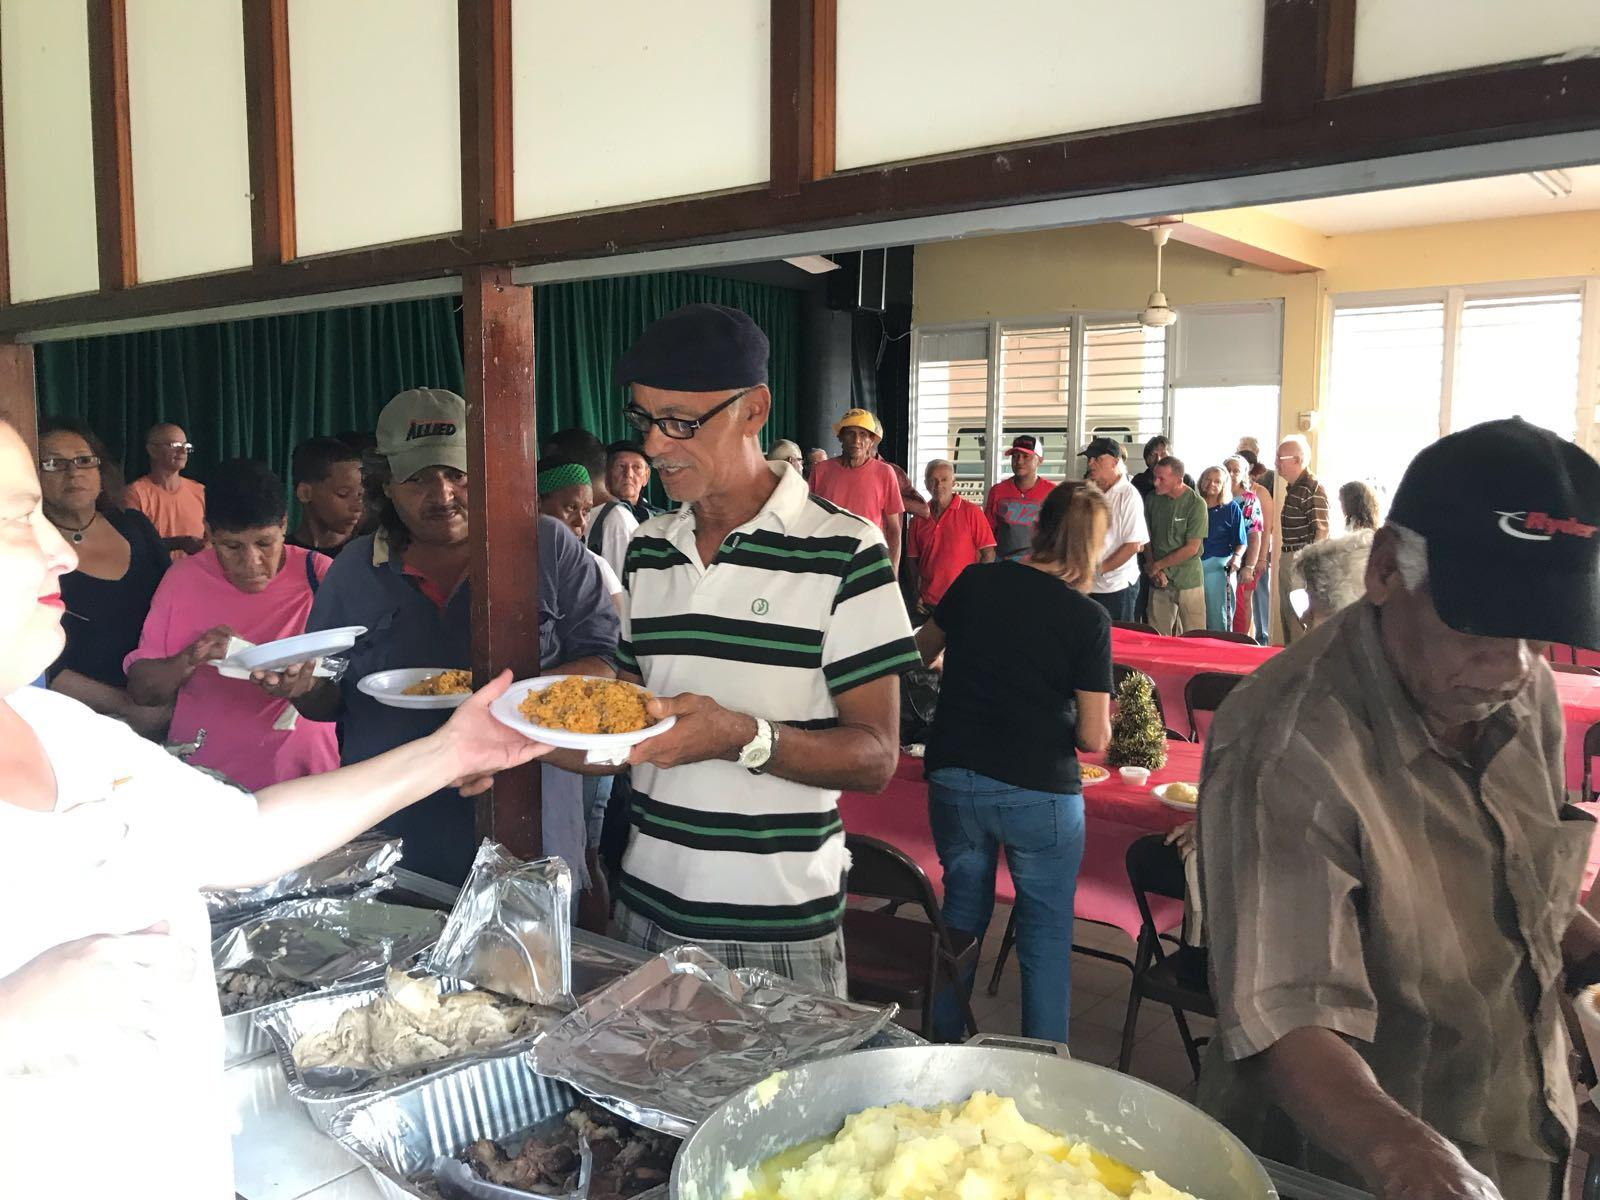 Attendees being served food at the Christmas party.